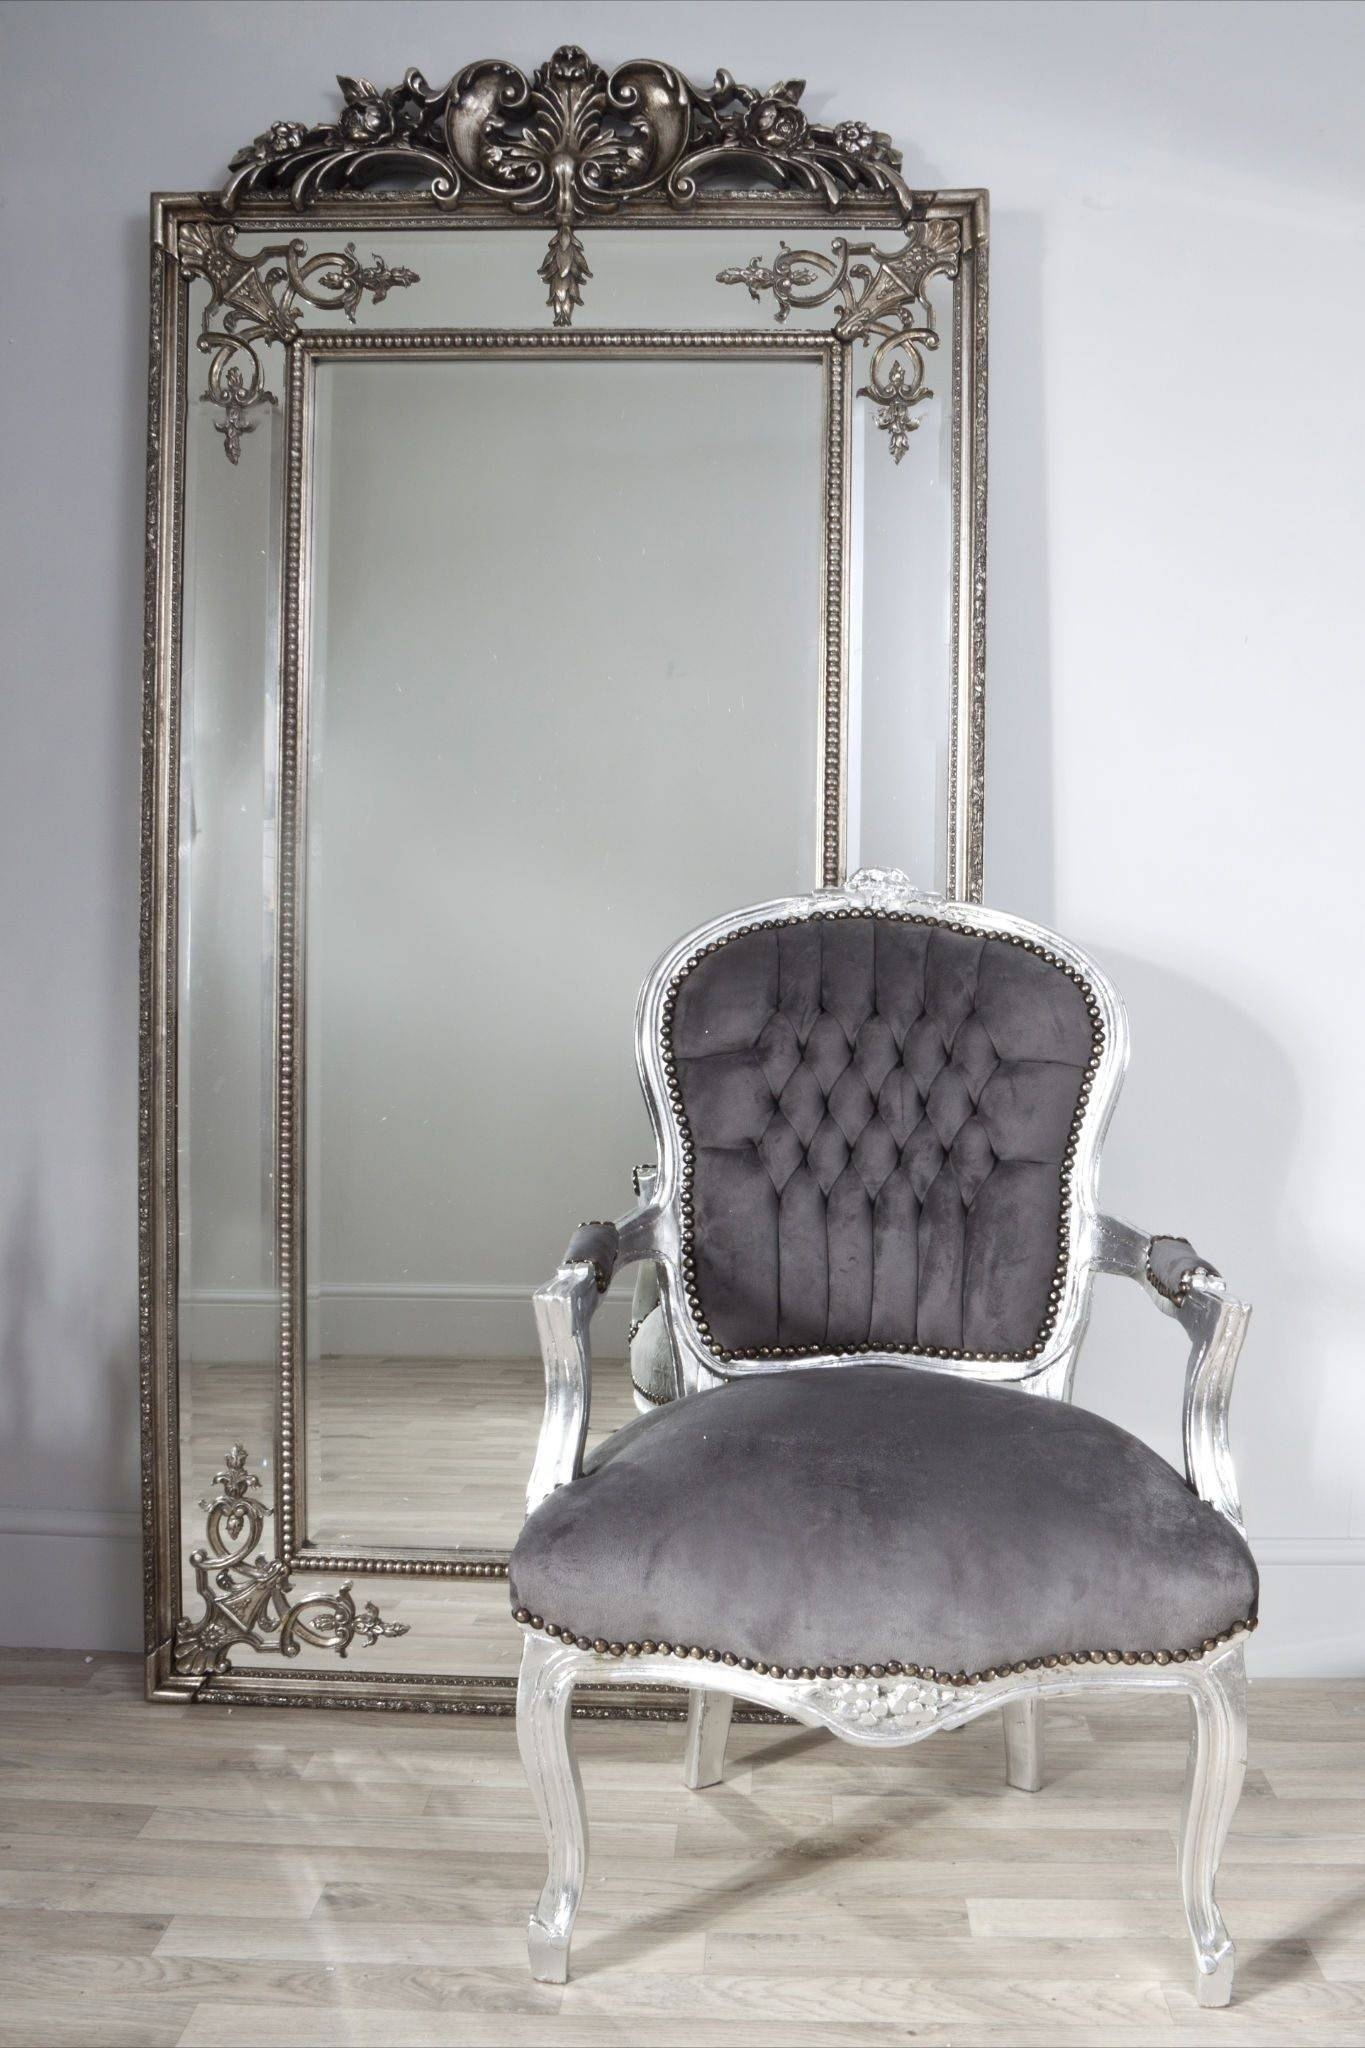 Mirror : Decorative Gold Mirrors. Gold Decorative Framed Bevelled throughout Large Ornate Gold Mirrors (Image 7 of 15)